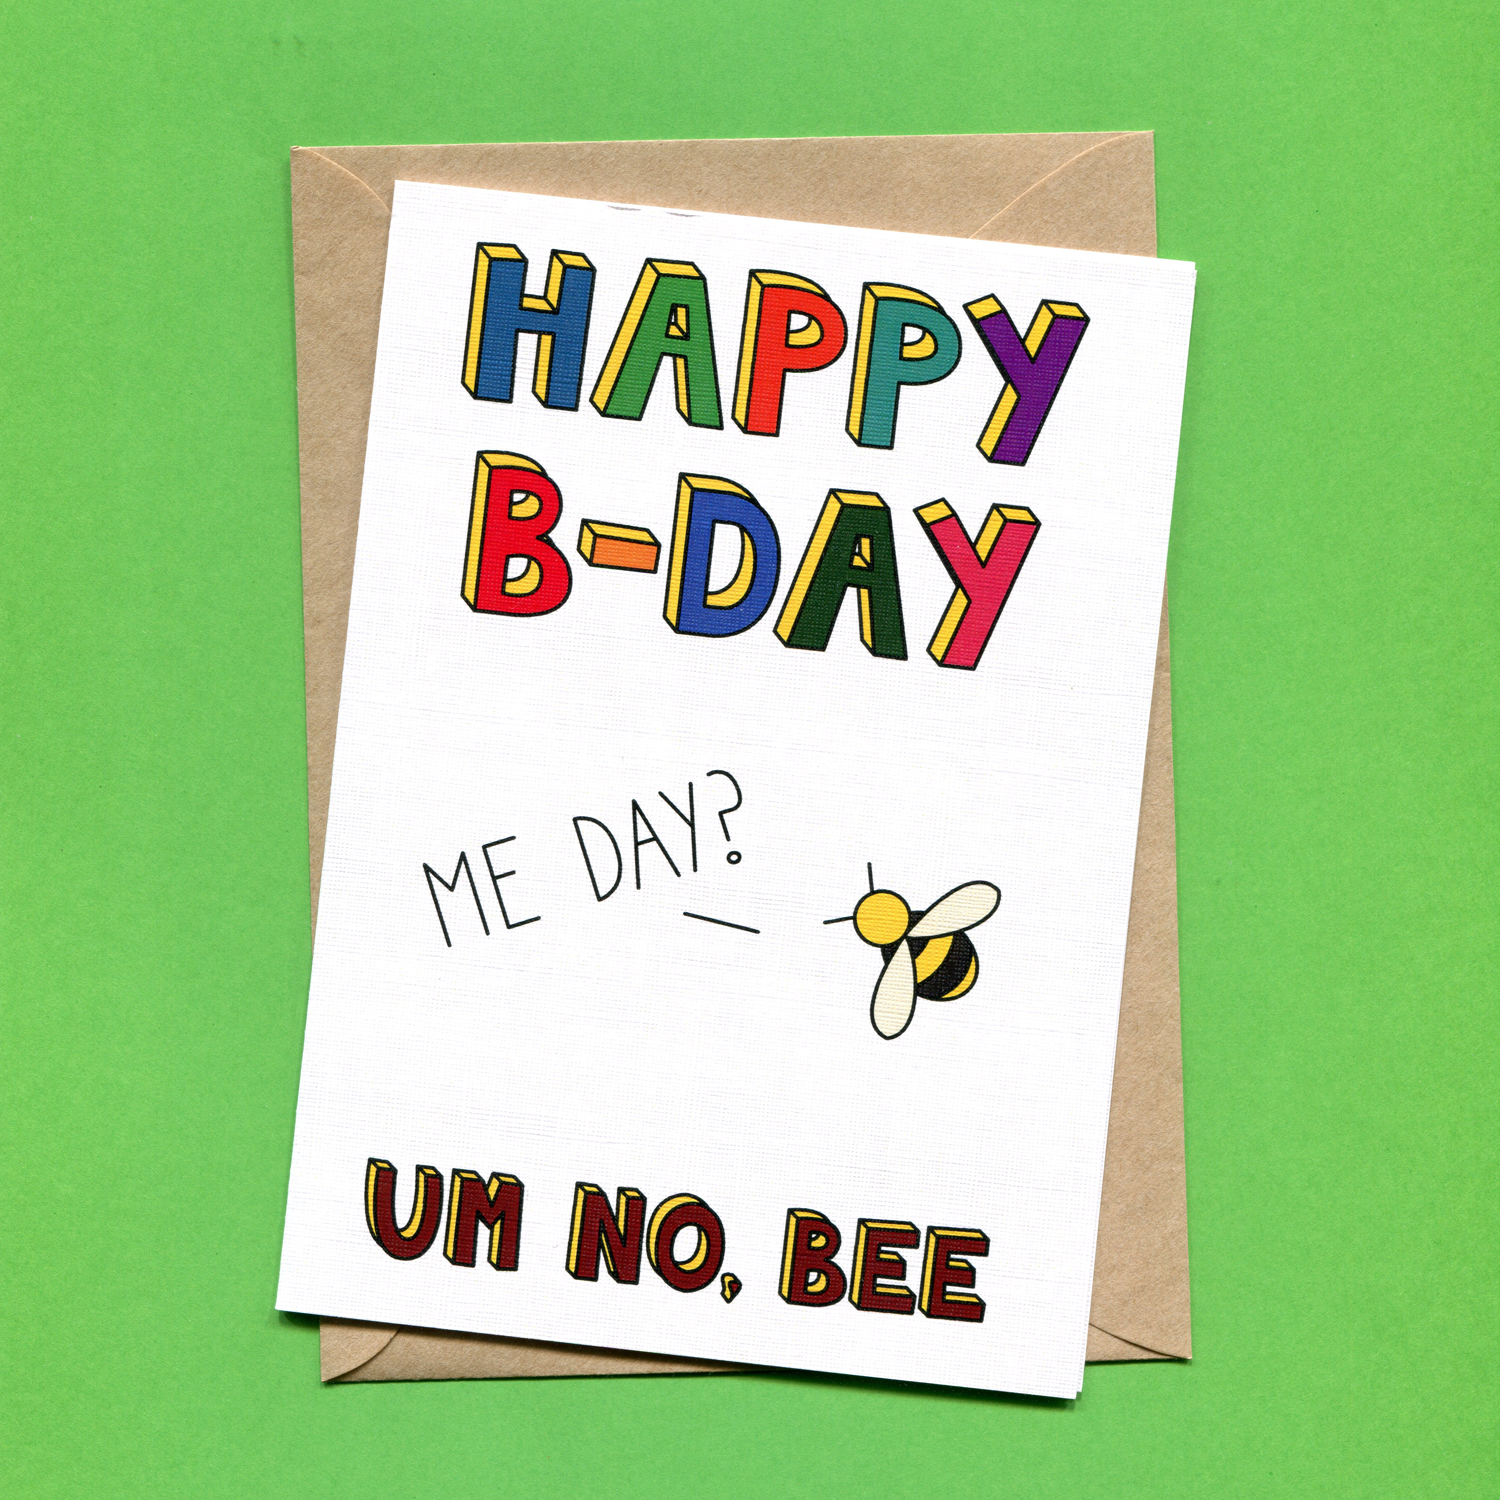 Catalogue_Things by Bean Happy Bday Bee Greeting Card.jpg